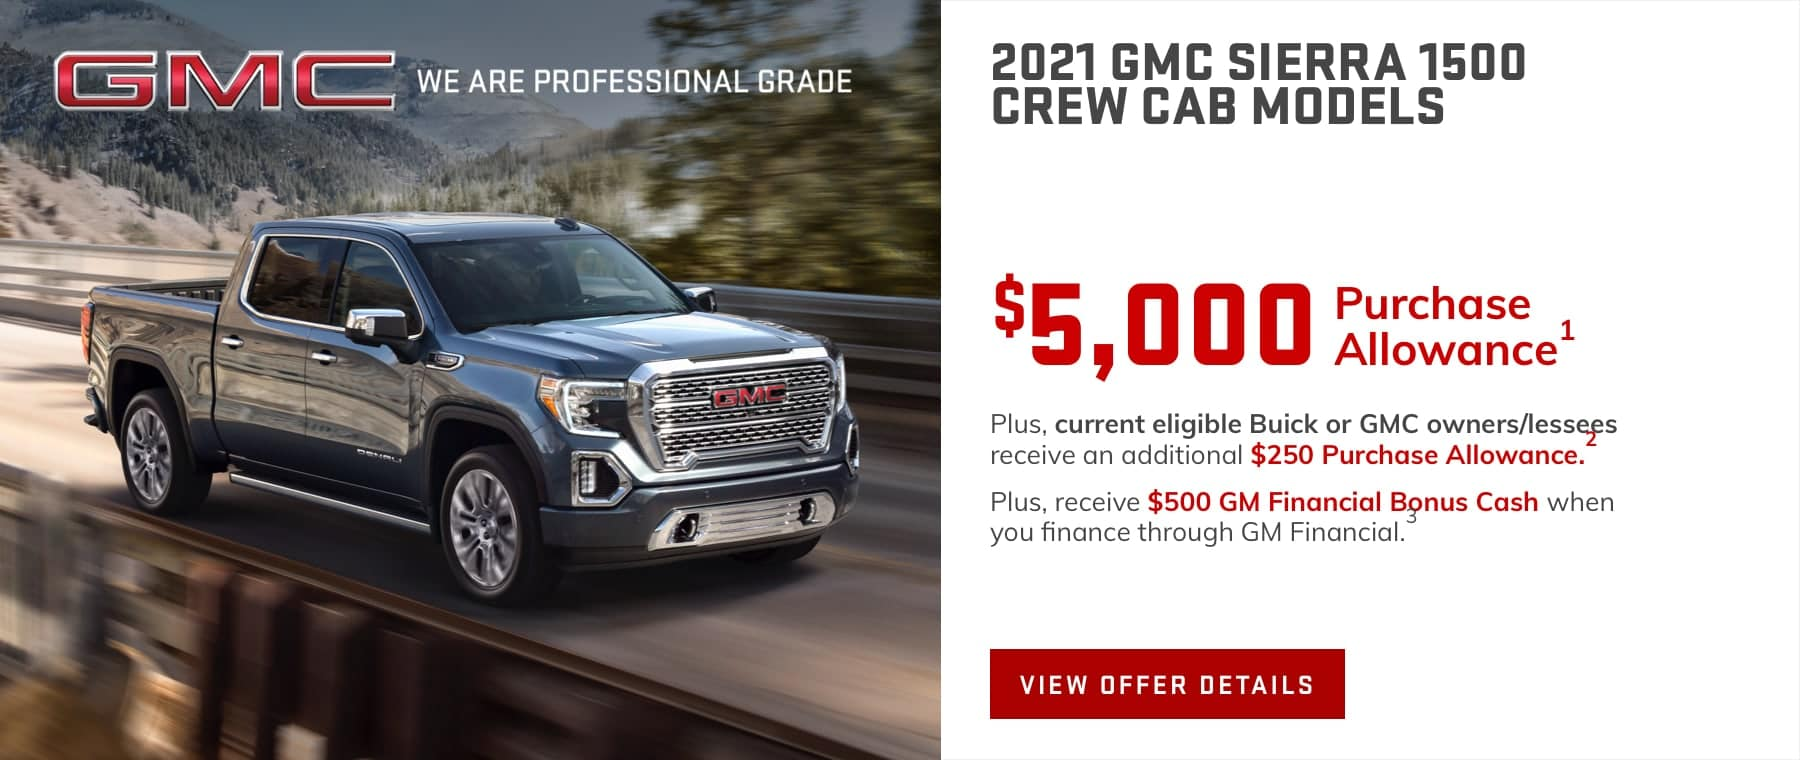 $53,020 Price after all offers on this Sierra.1 Plus, current eligible Buick or GMC owners/lessees receive an additional $250 Purchase Allowance.2 Plus, receive $500 GM Financial Bonus Cash when you finance through GM Financial.3